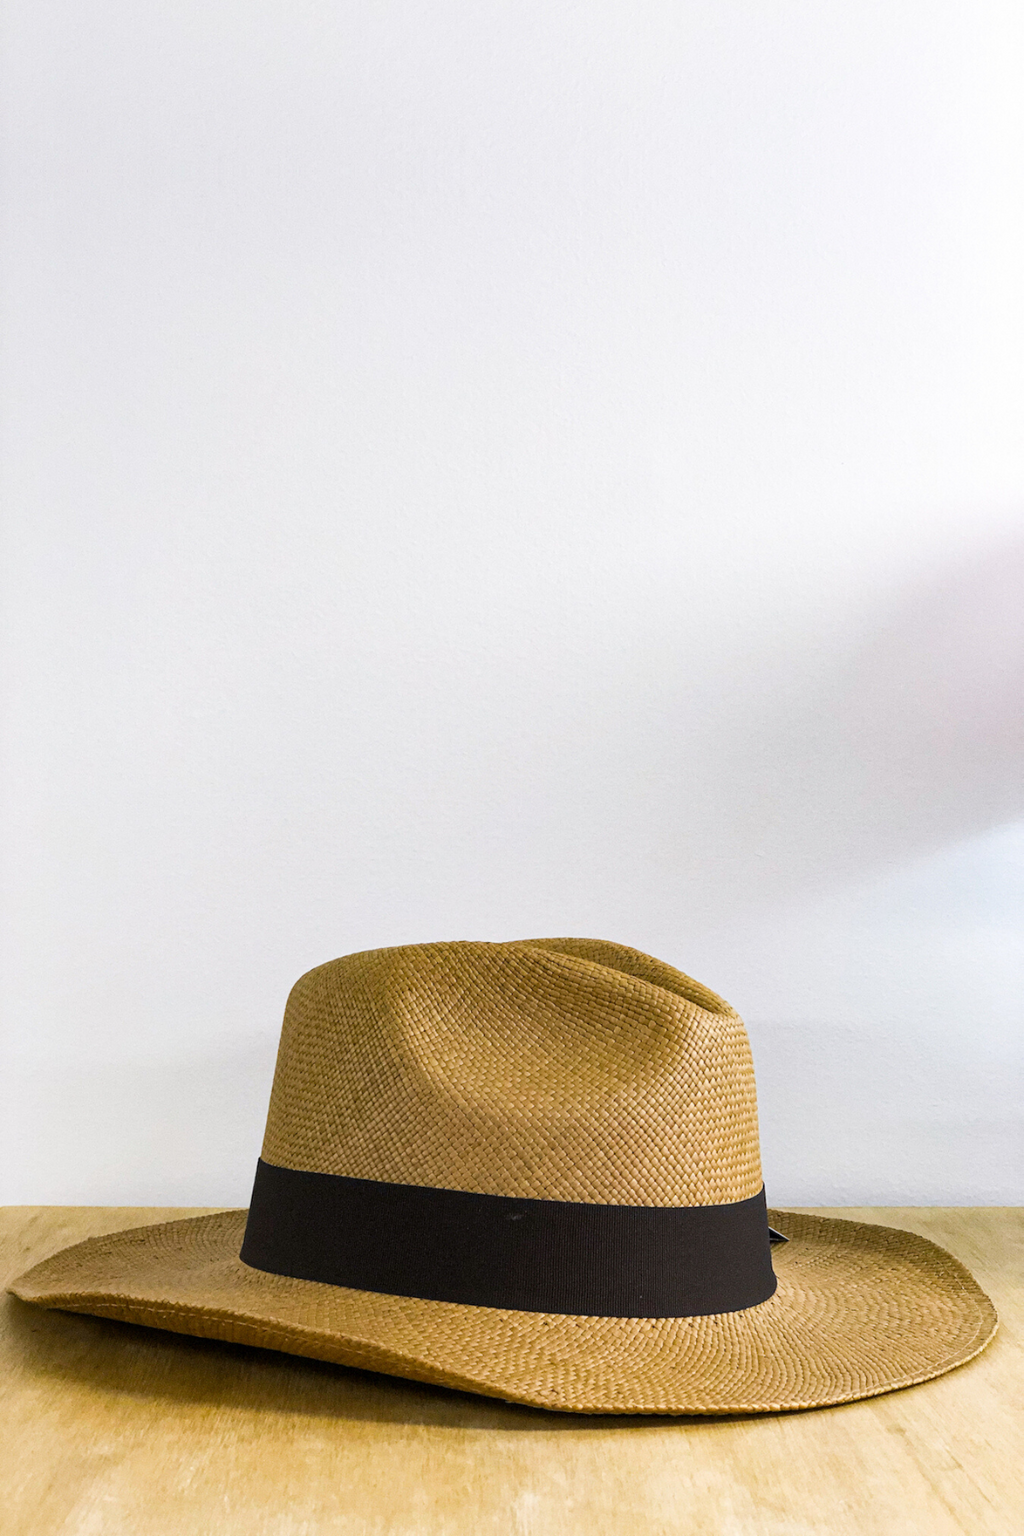 Tobacco Borsalino Panama Hat Hats The Fashion Advocate ethical Australian fashion designer boutique Melbourne sustainable clothes